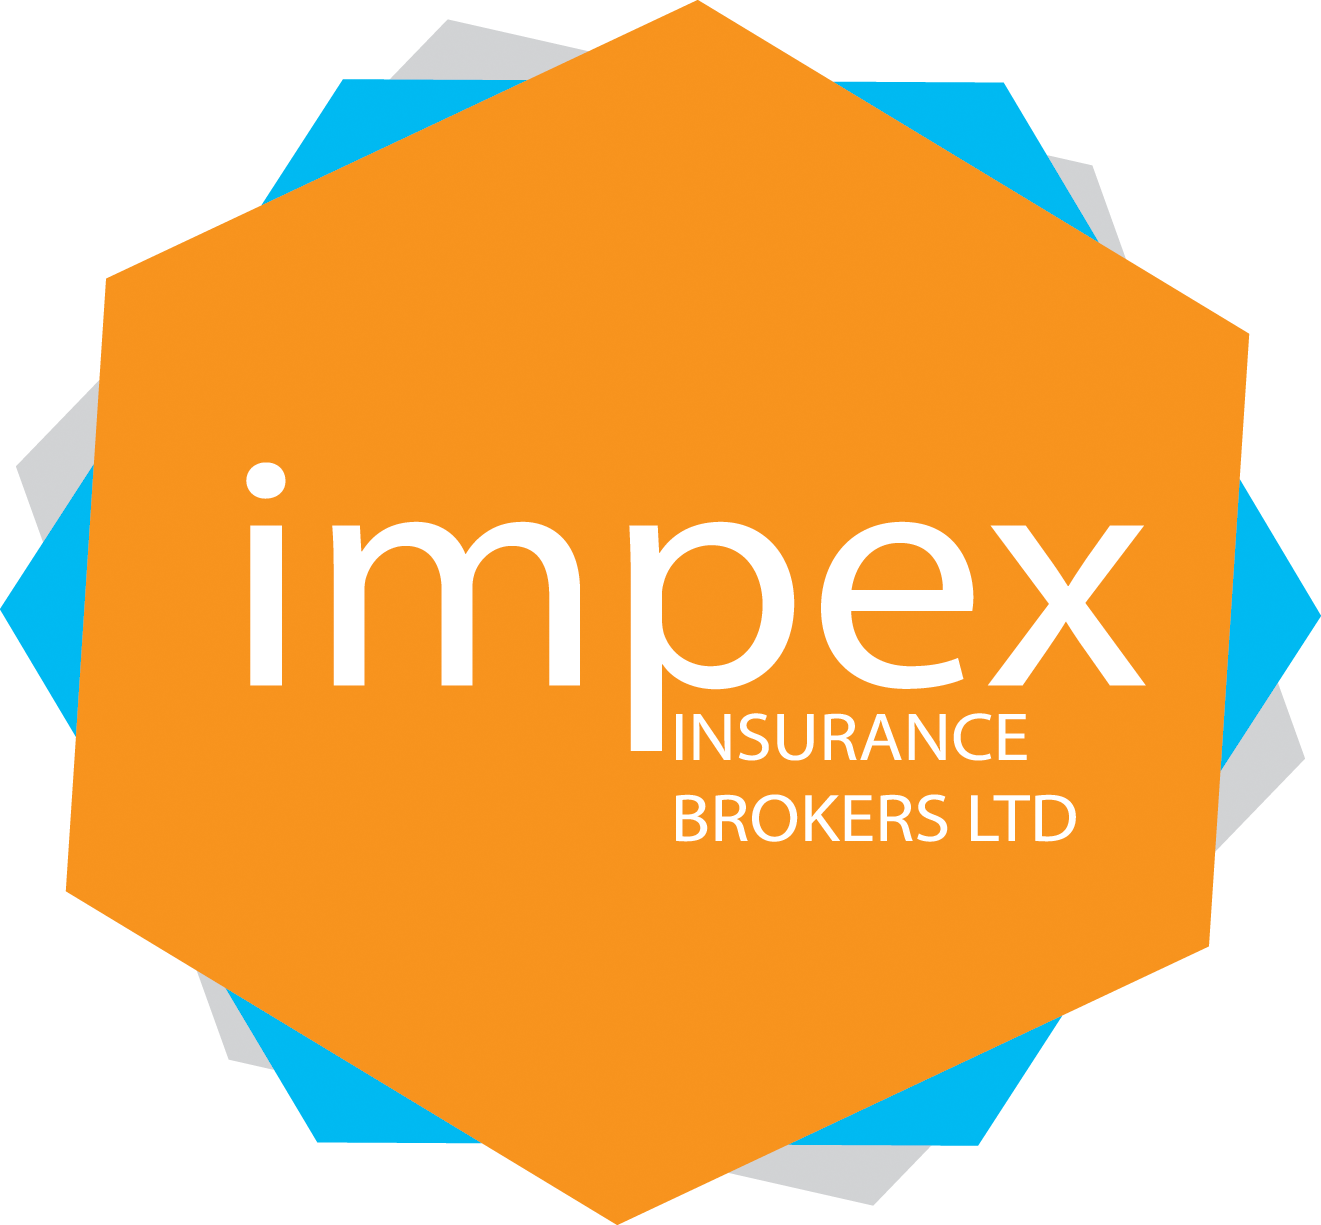 Impex Insurance Brokers